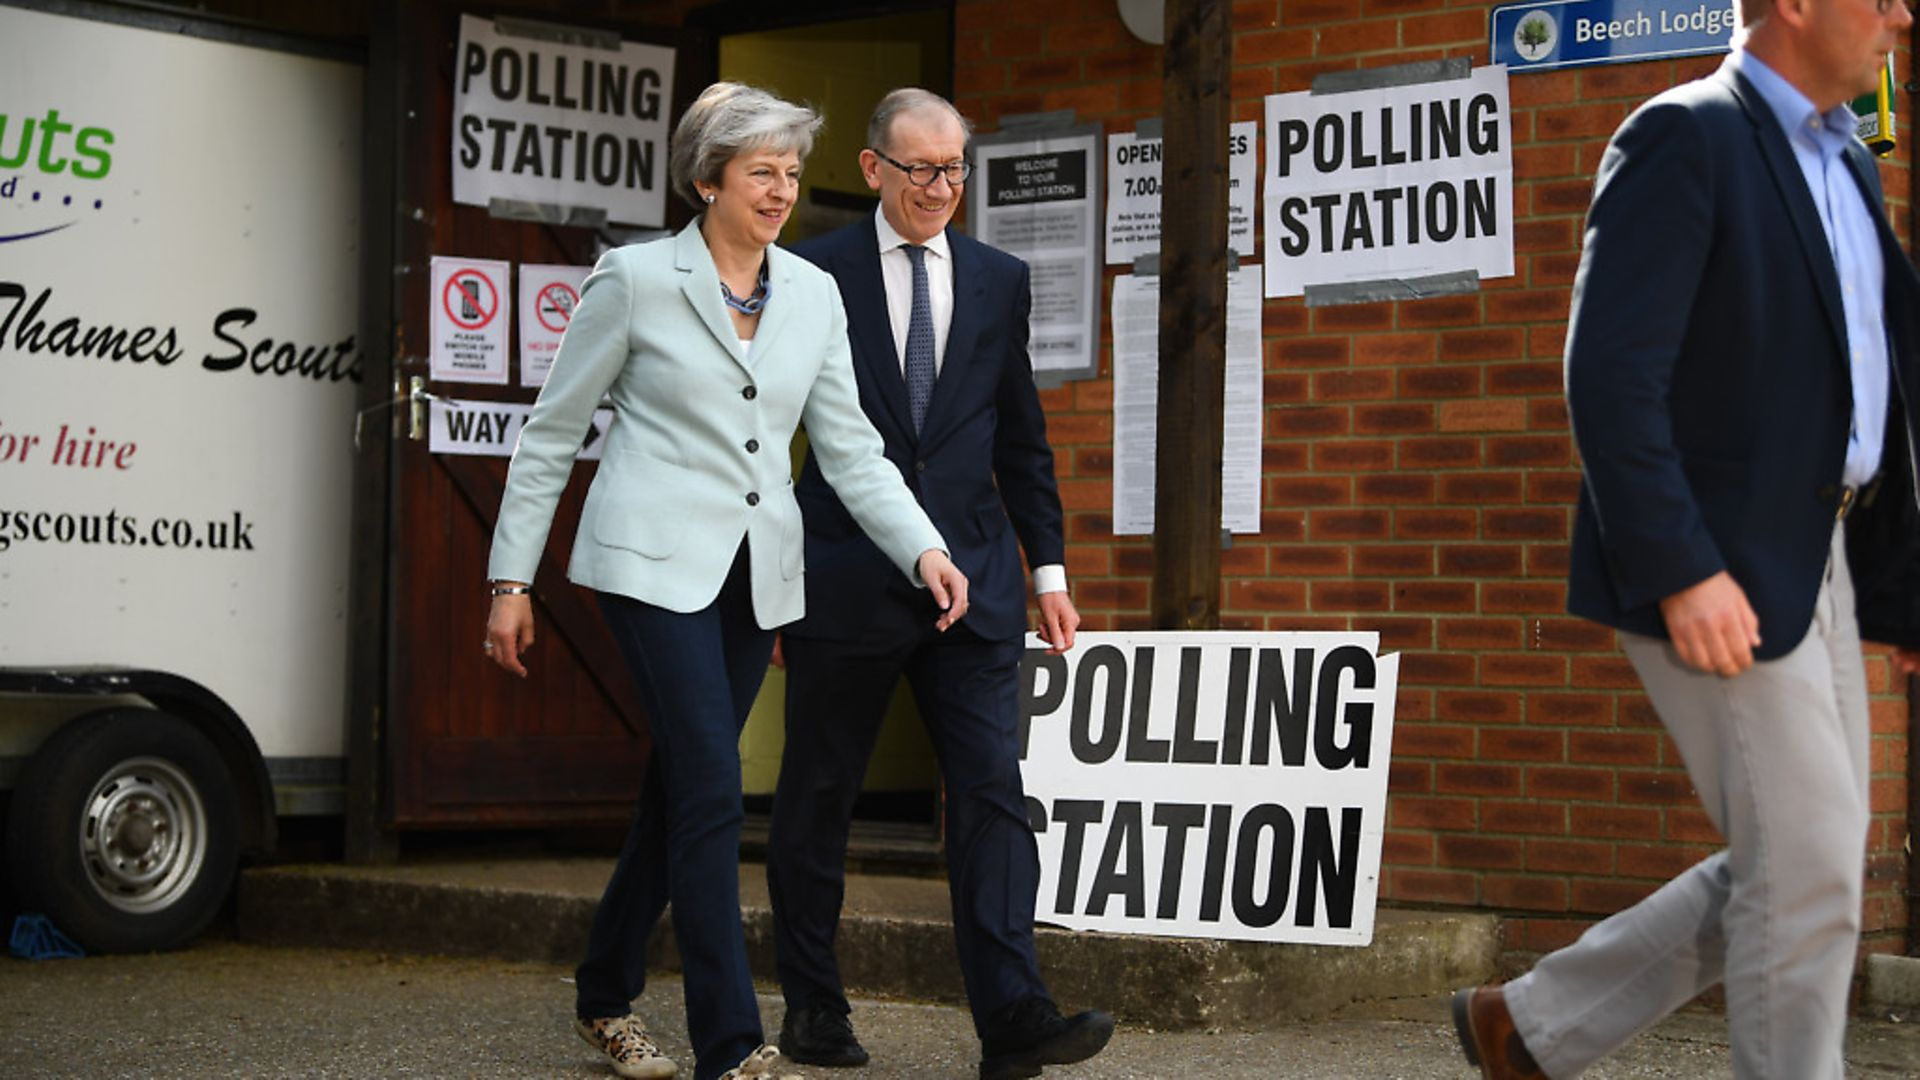 Prime Minister Theresa May and her husband, Philip, arrive to cast their votes at a polling station for the European Parliament election. Photograph: Victoria Jones/PA. - Credit: PA Wire/PA Images